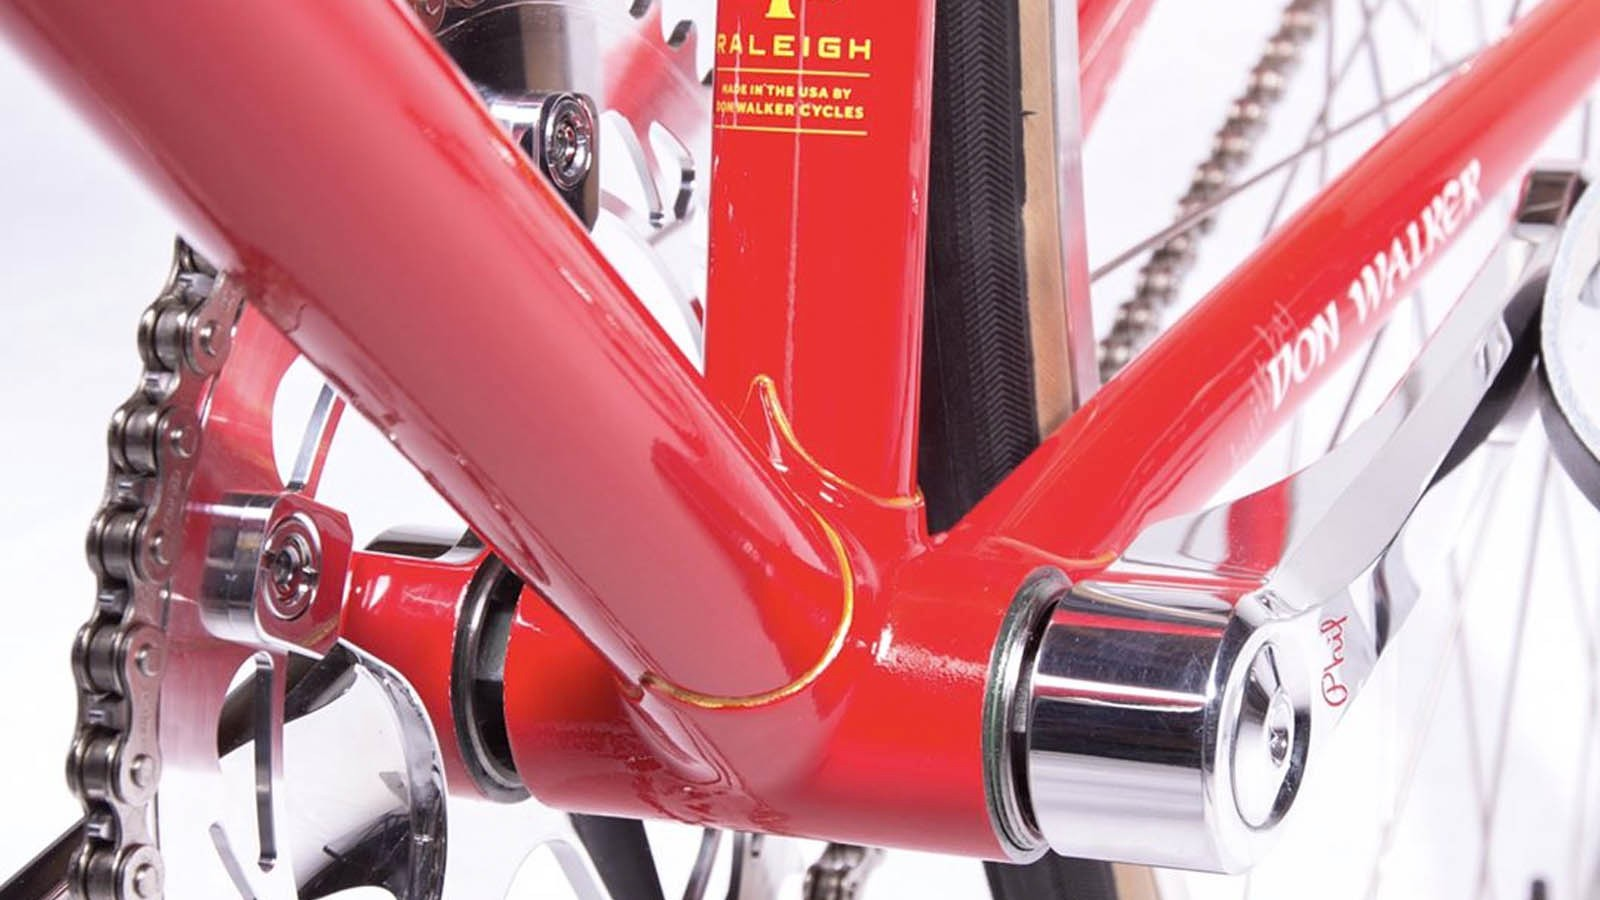 Handmade steel lugs and tube, and Phil Wood cranks — what more could you want?